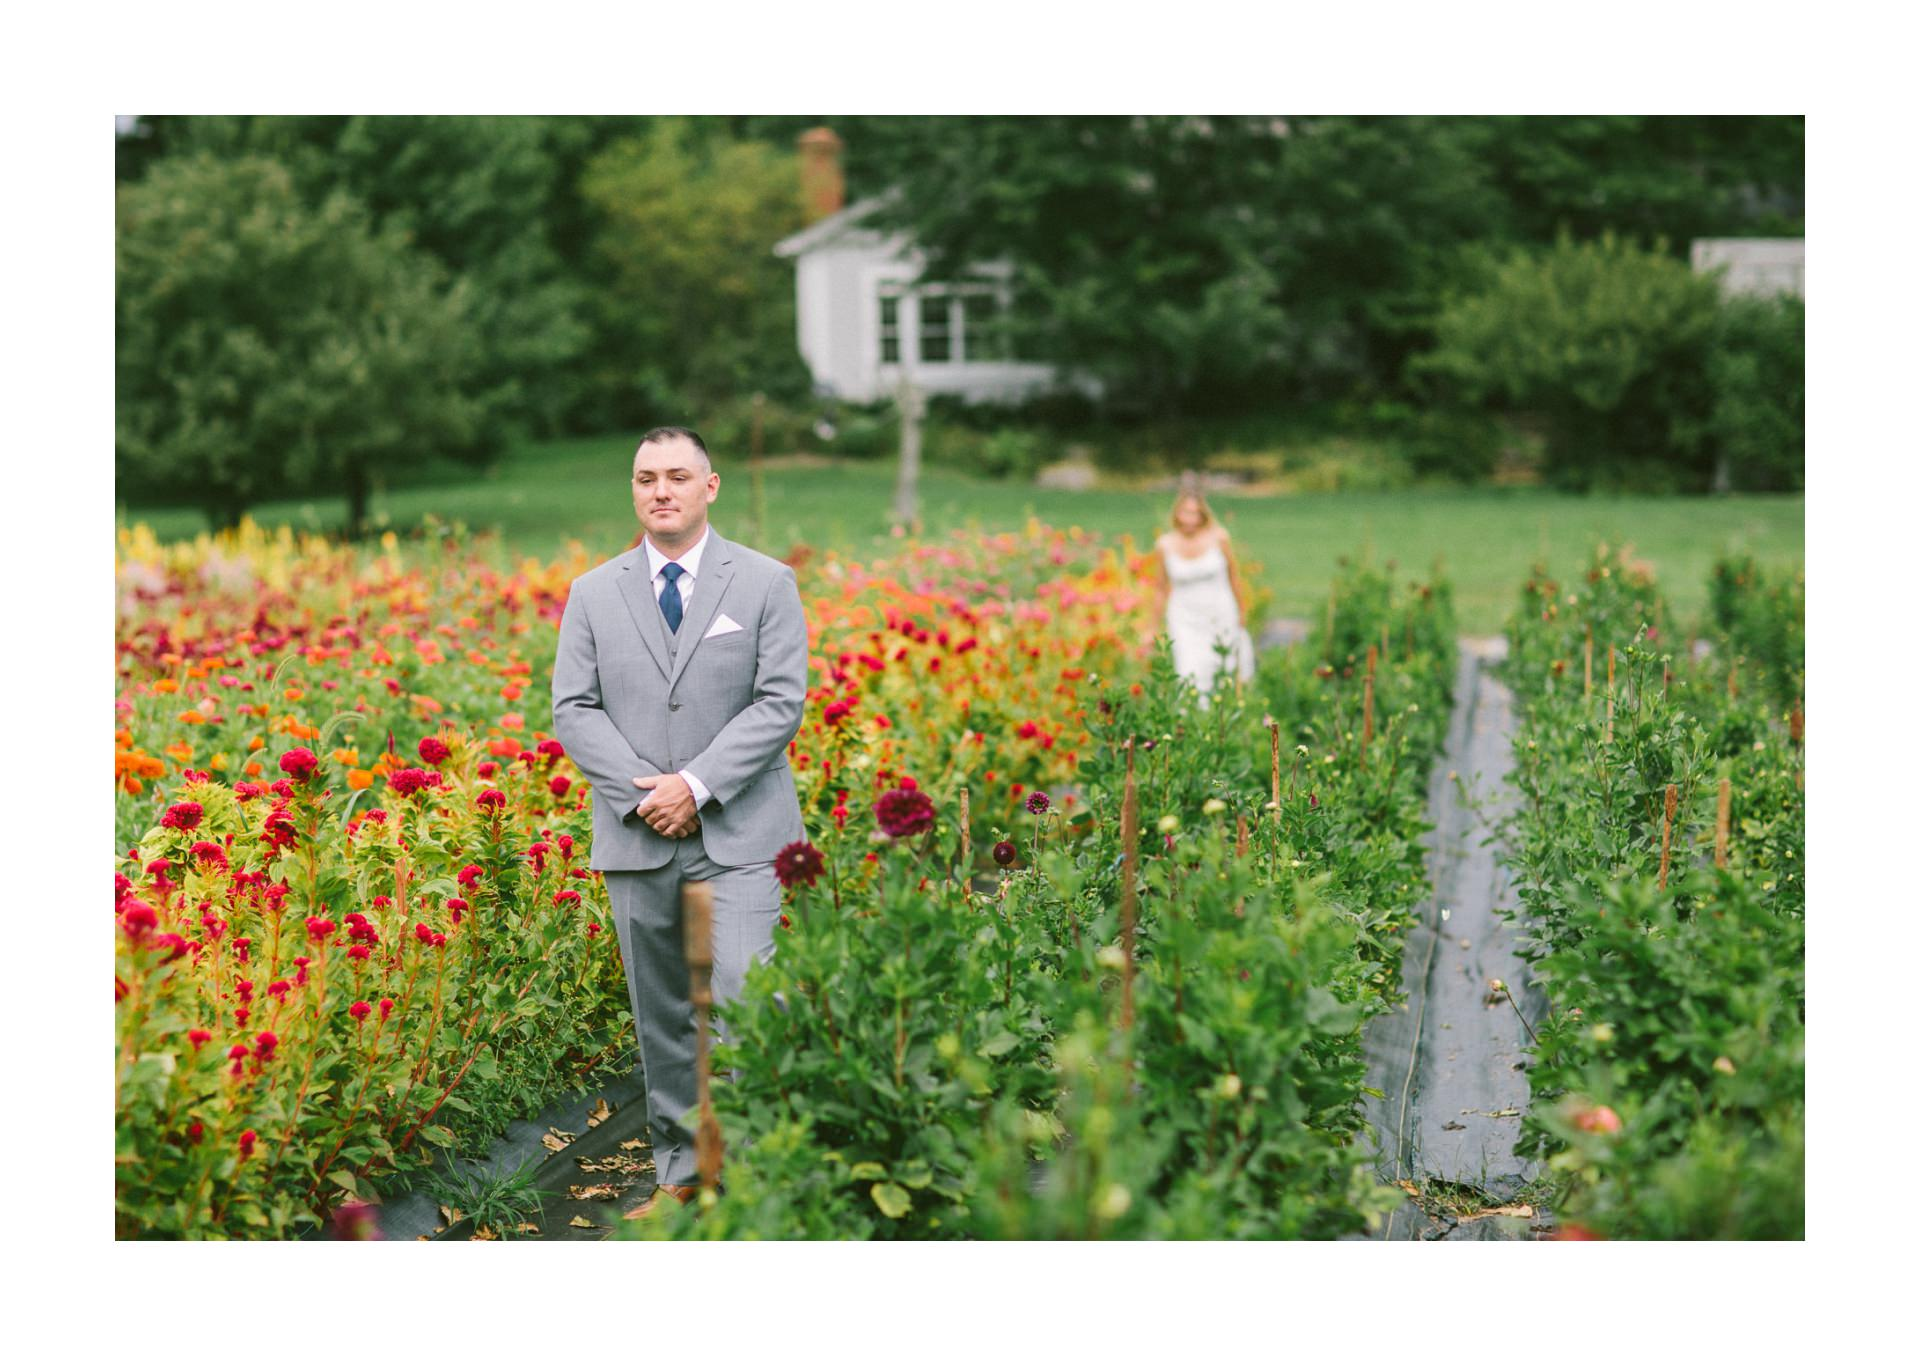 Conrad Botzum Farmstead Wedding Photographer 00002.JPG